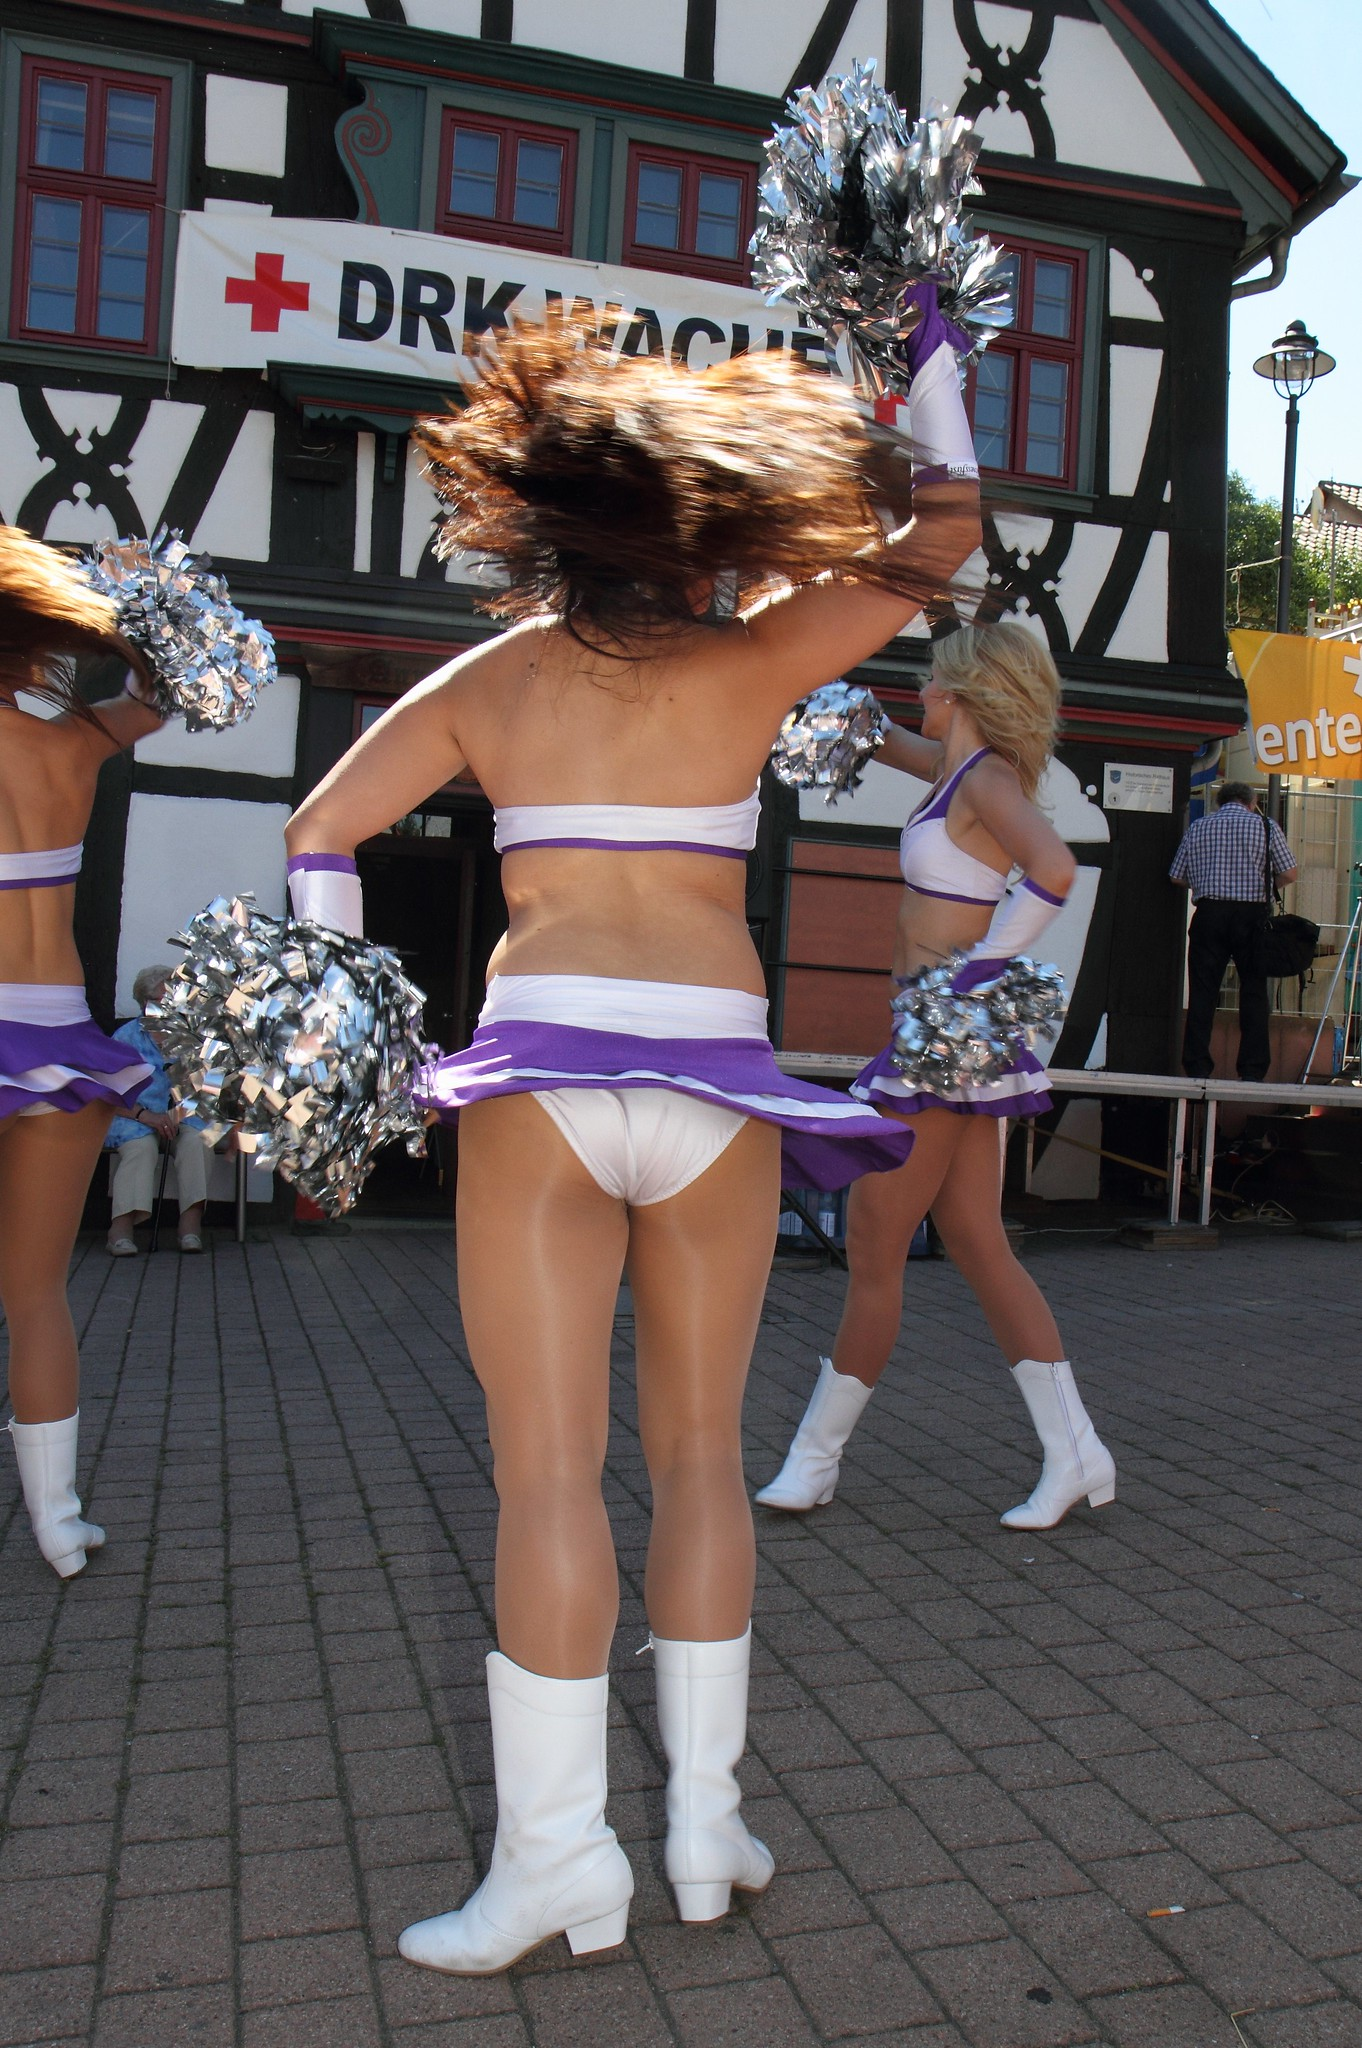 CheerLeader pantyhose audio just